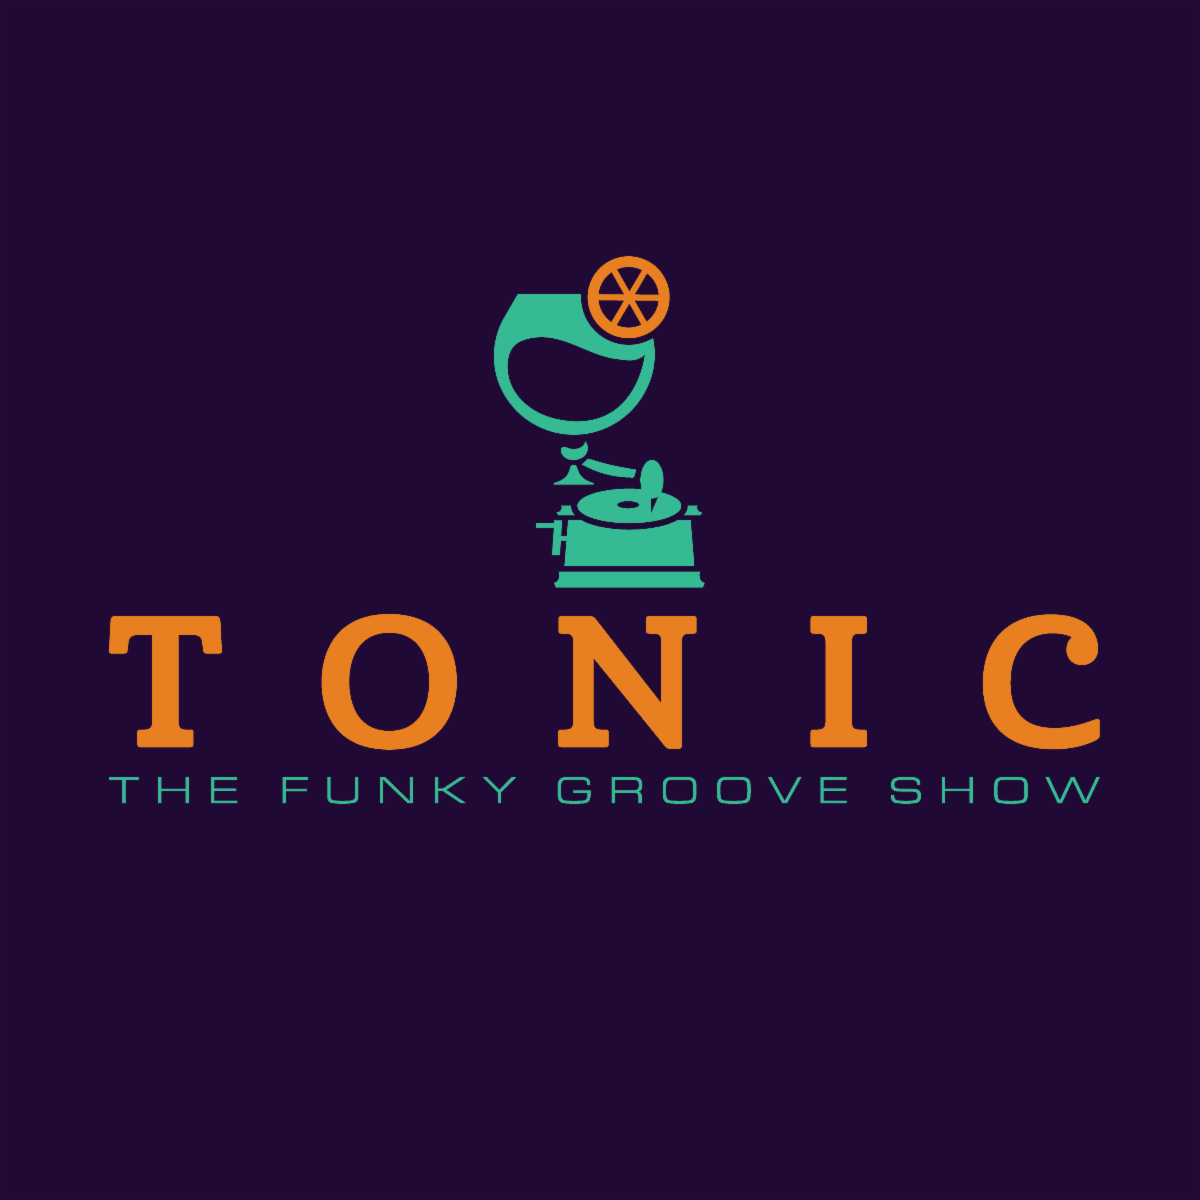 the funky groove show